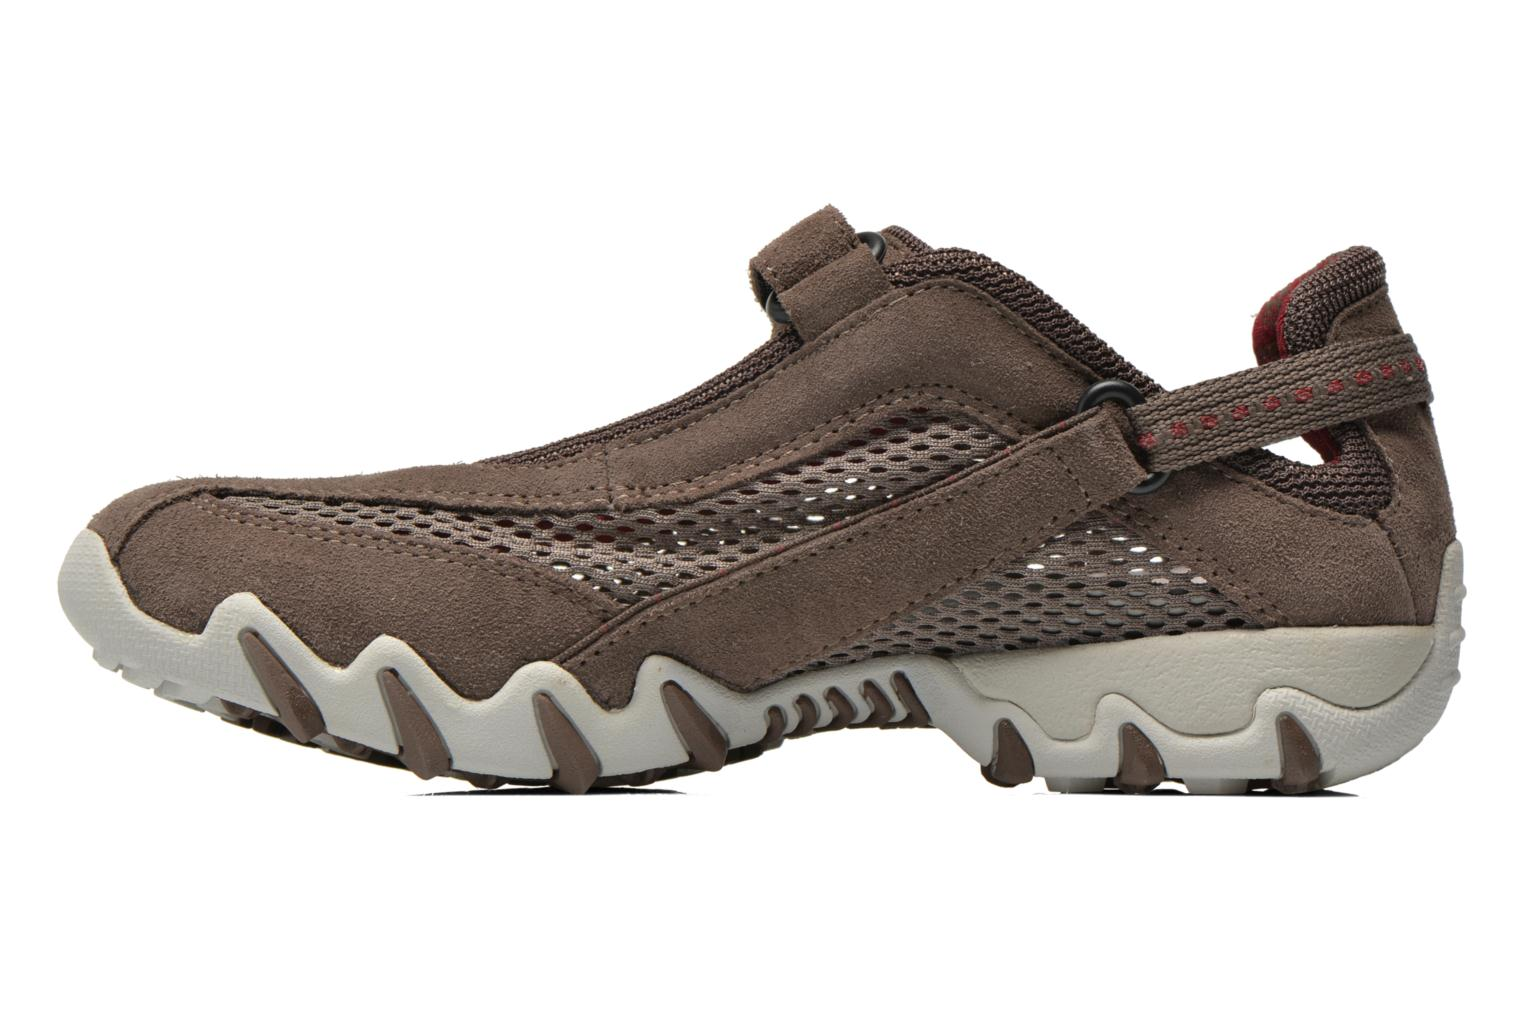 Chaussures de sport Allrounder by Mephisto Niro Marron vue face